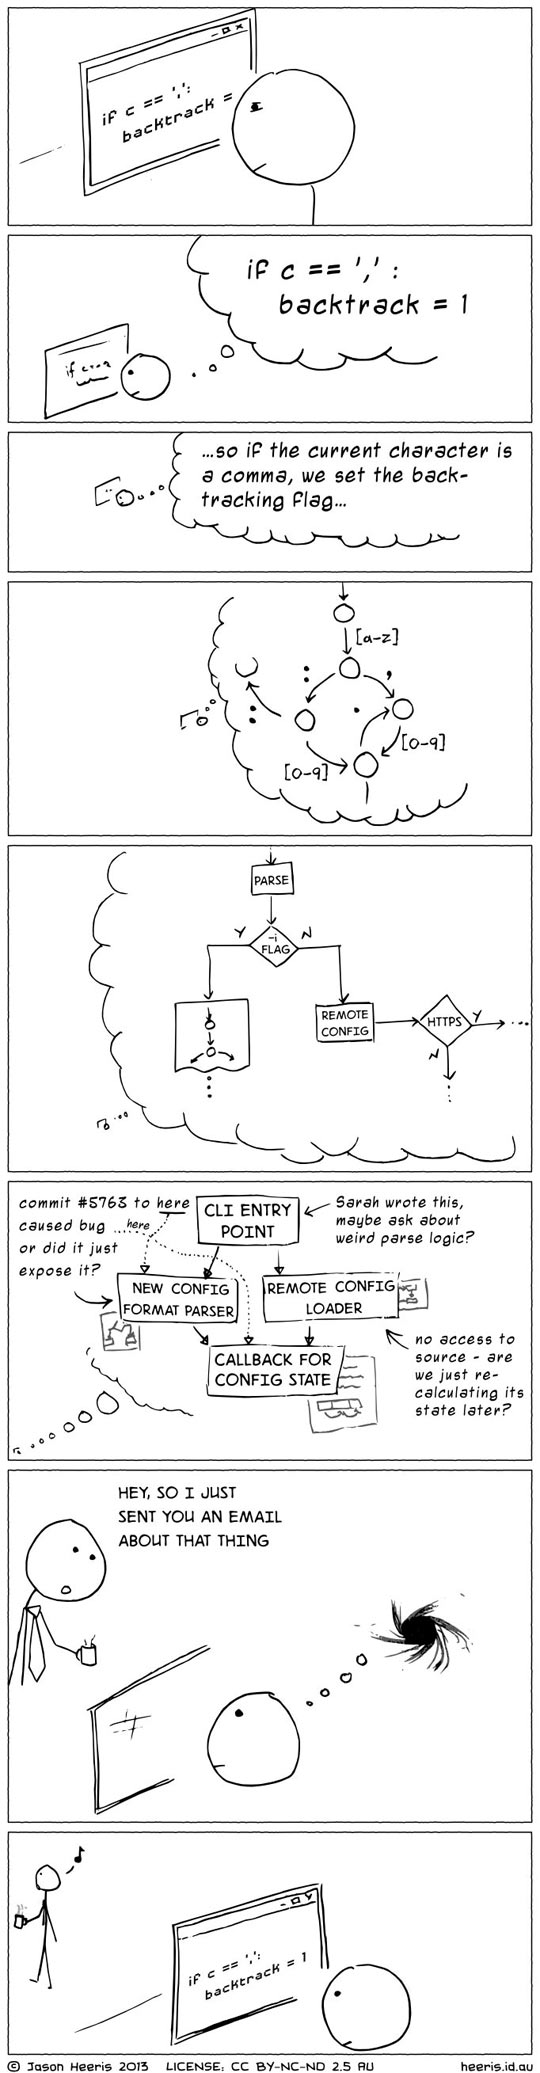 funny-programmer-comic-understand-message